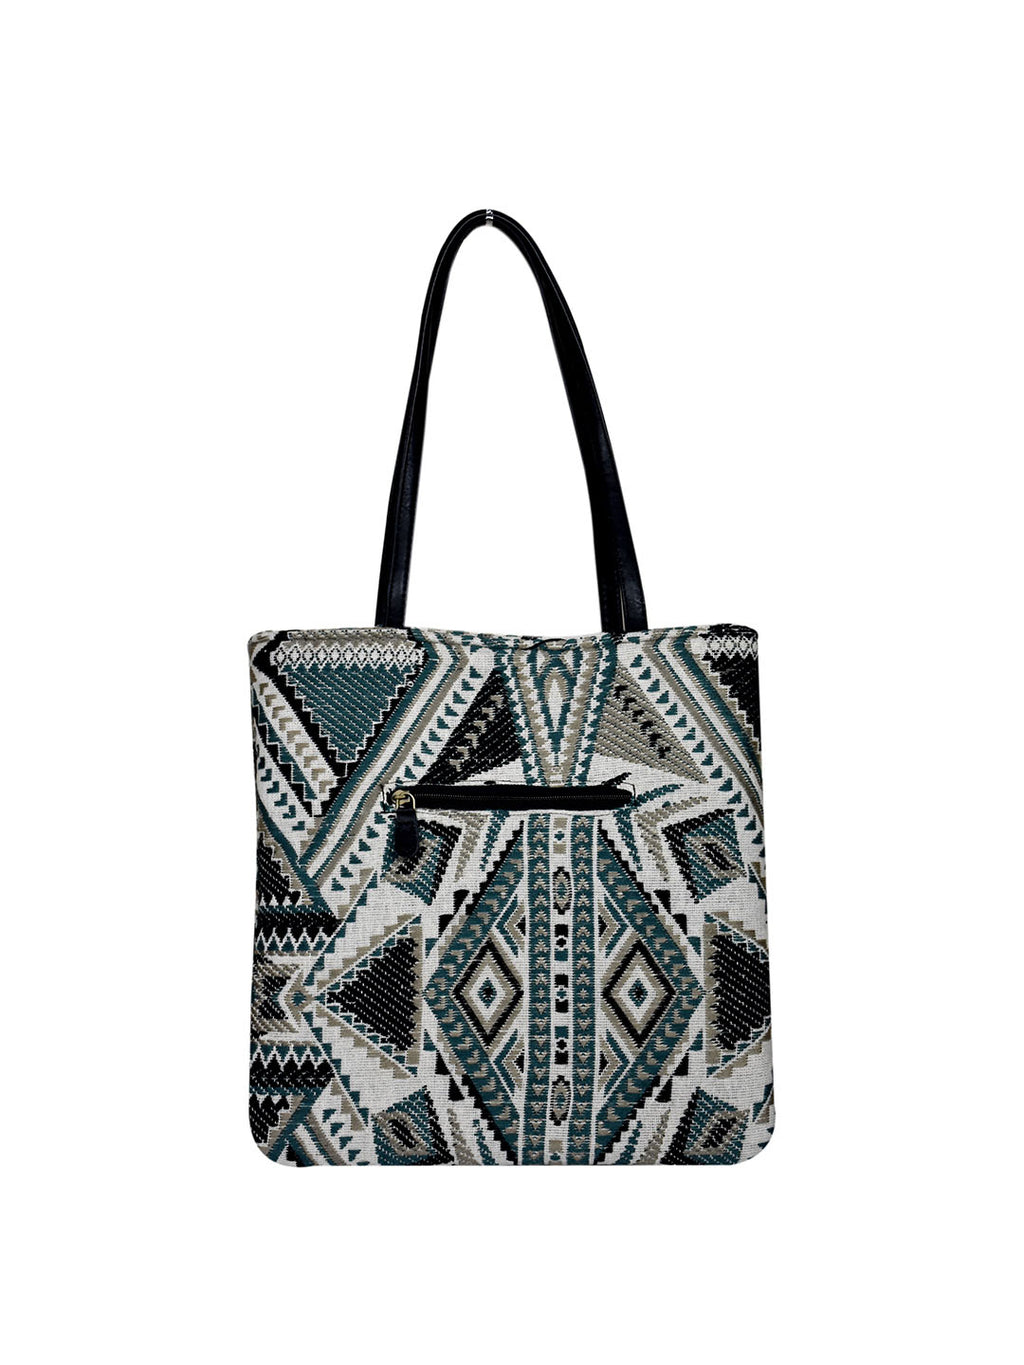 Berserk Teal Tribal Handloom Shopper Tote